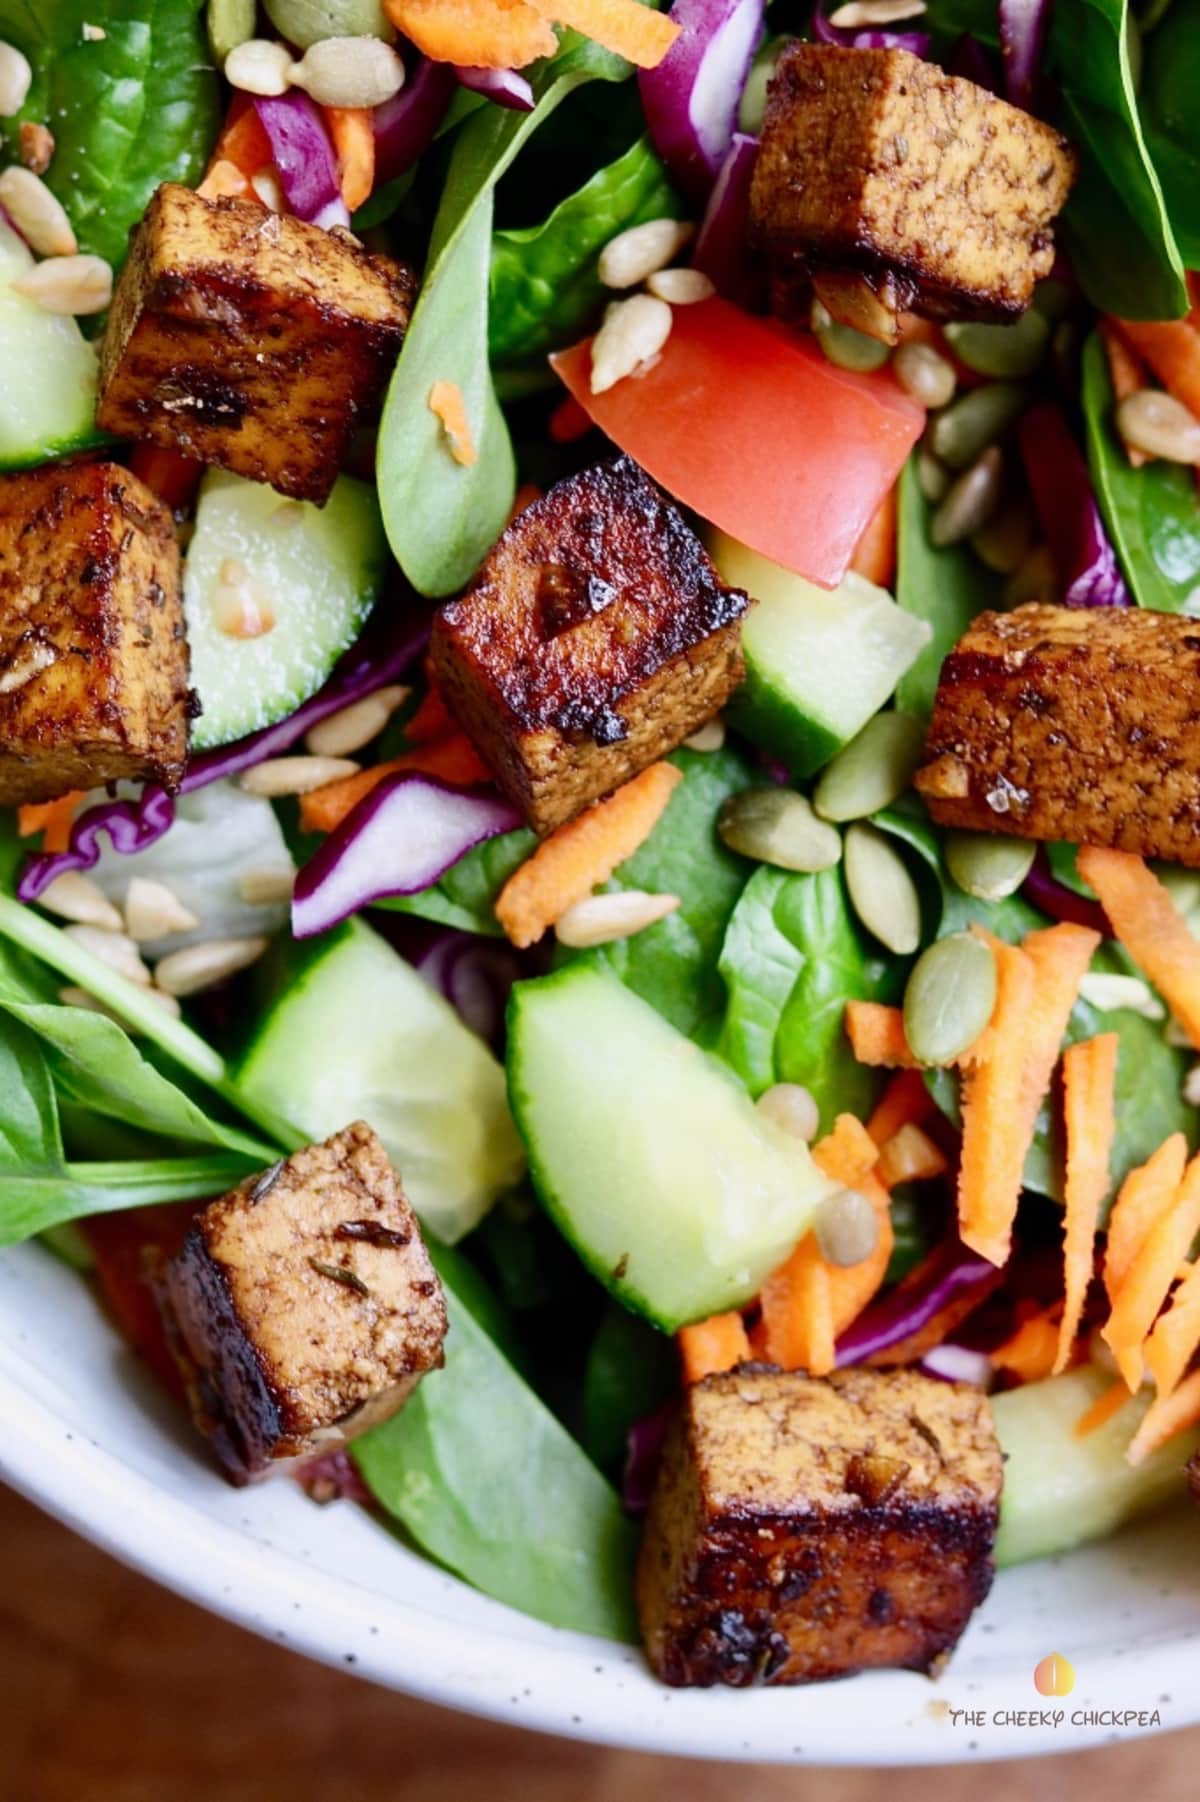 marinated tofu pieces on top of a green salad